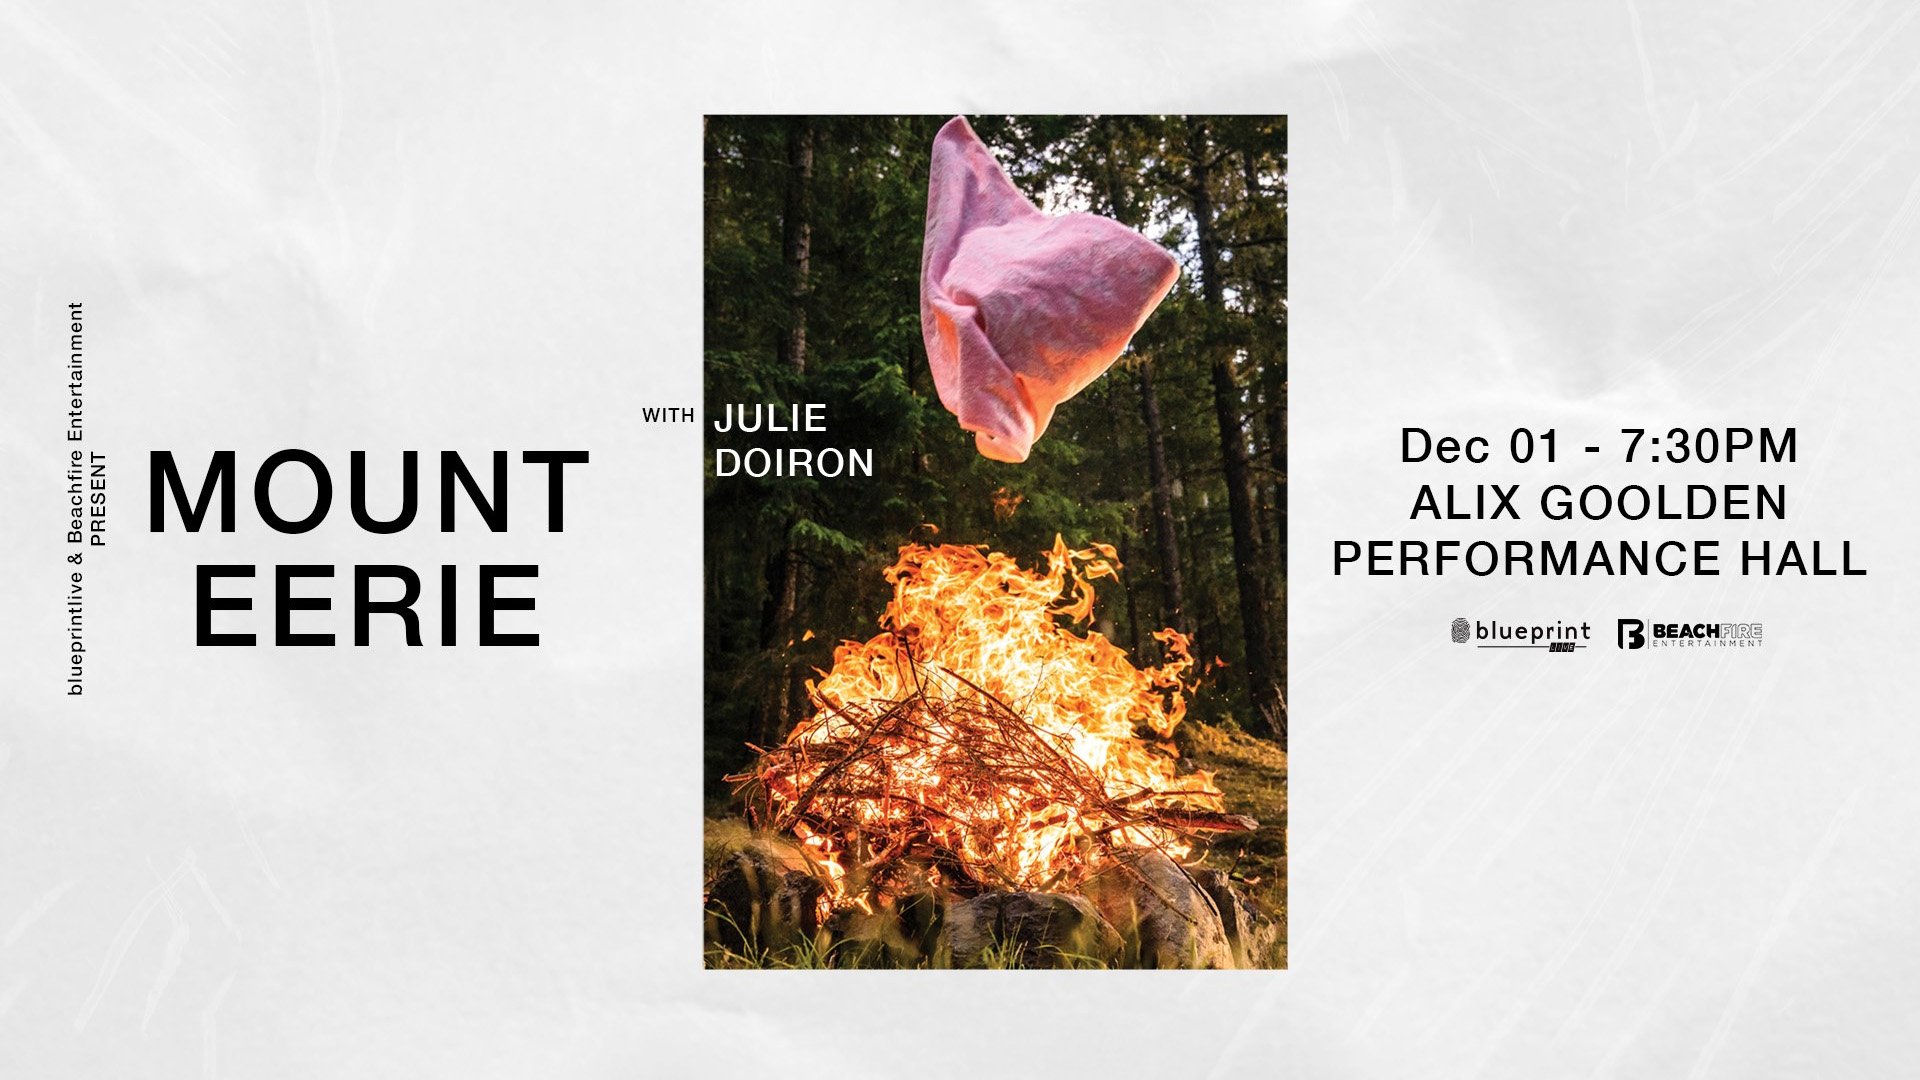 Mount Eerie December 1, 2019 | Alix Goolden Hall